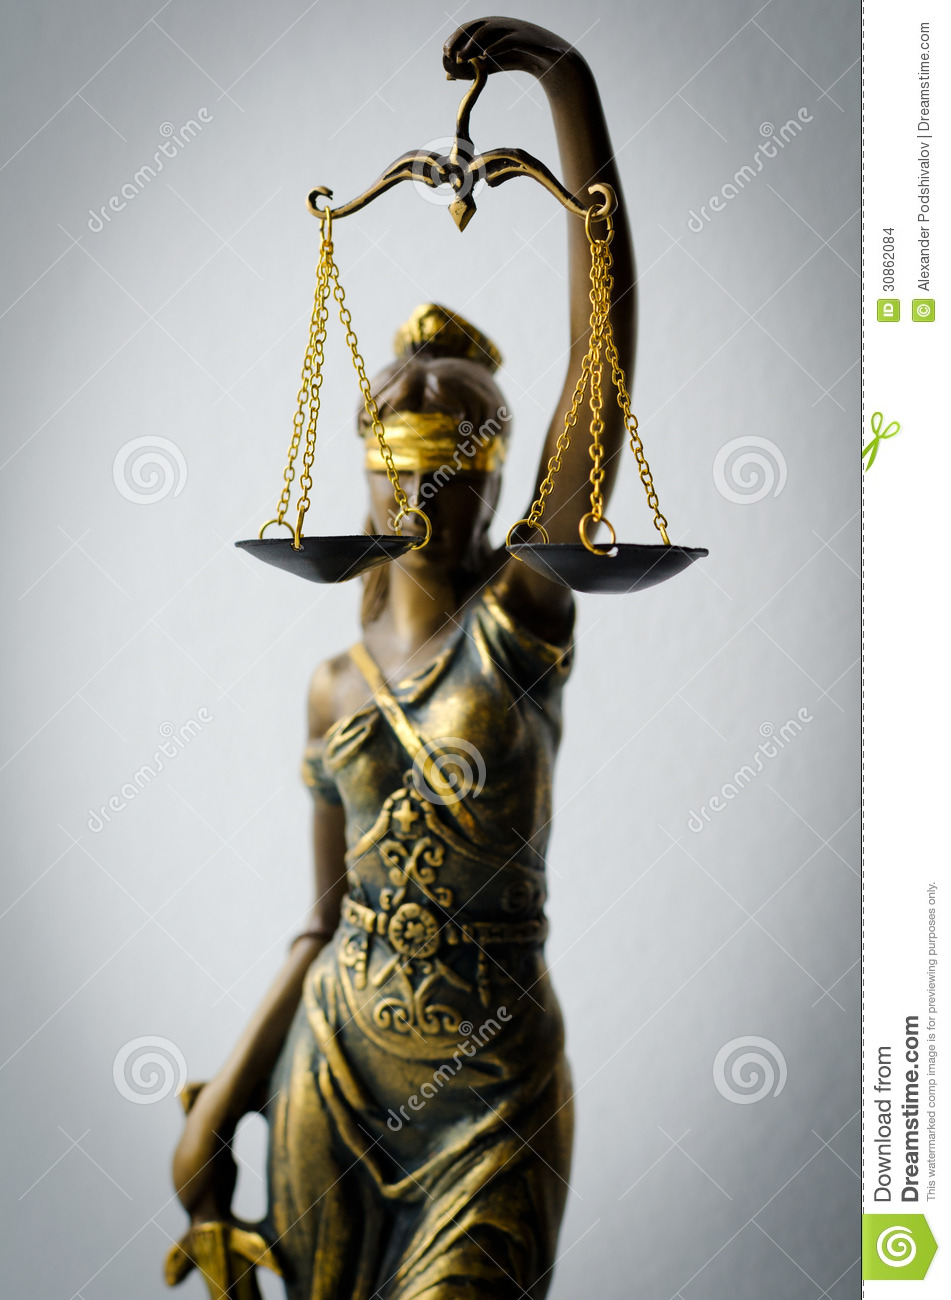 Statue Of Justice Stock Images - Image: 30862084